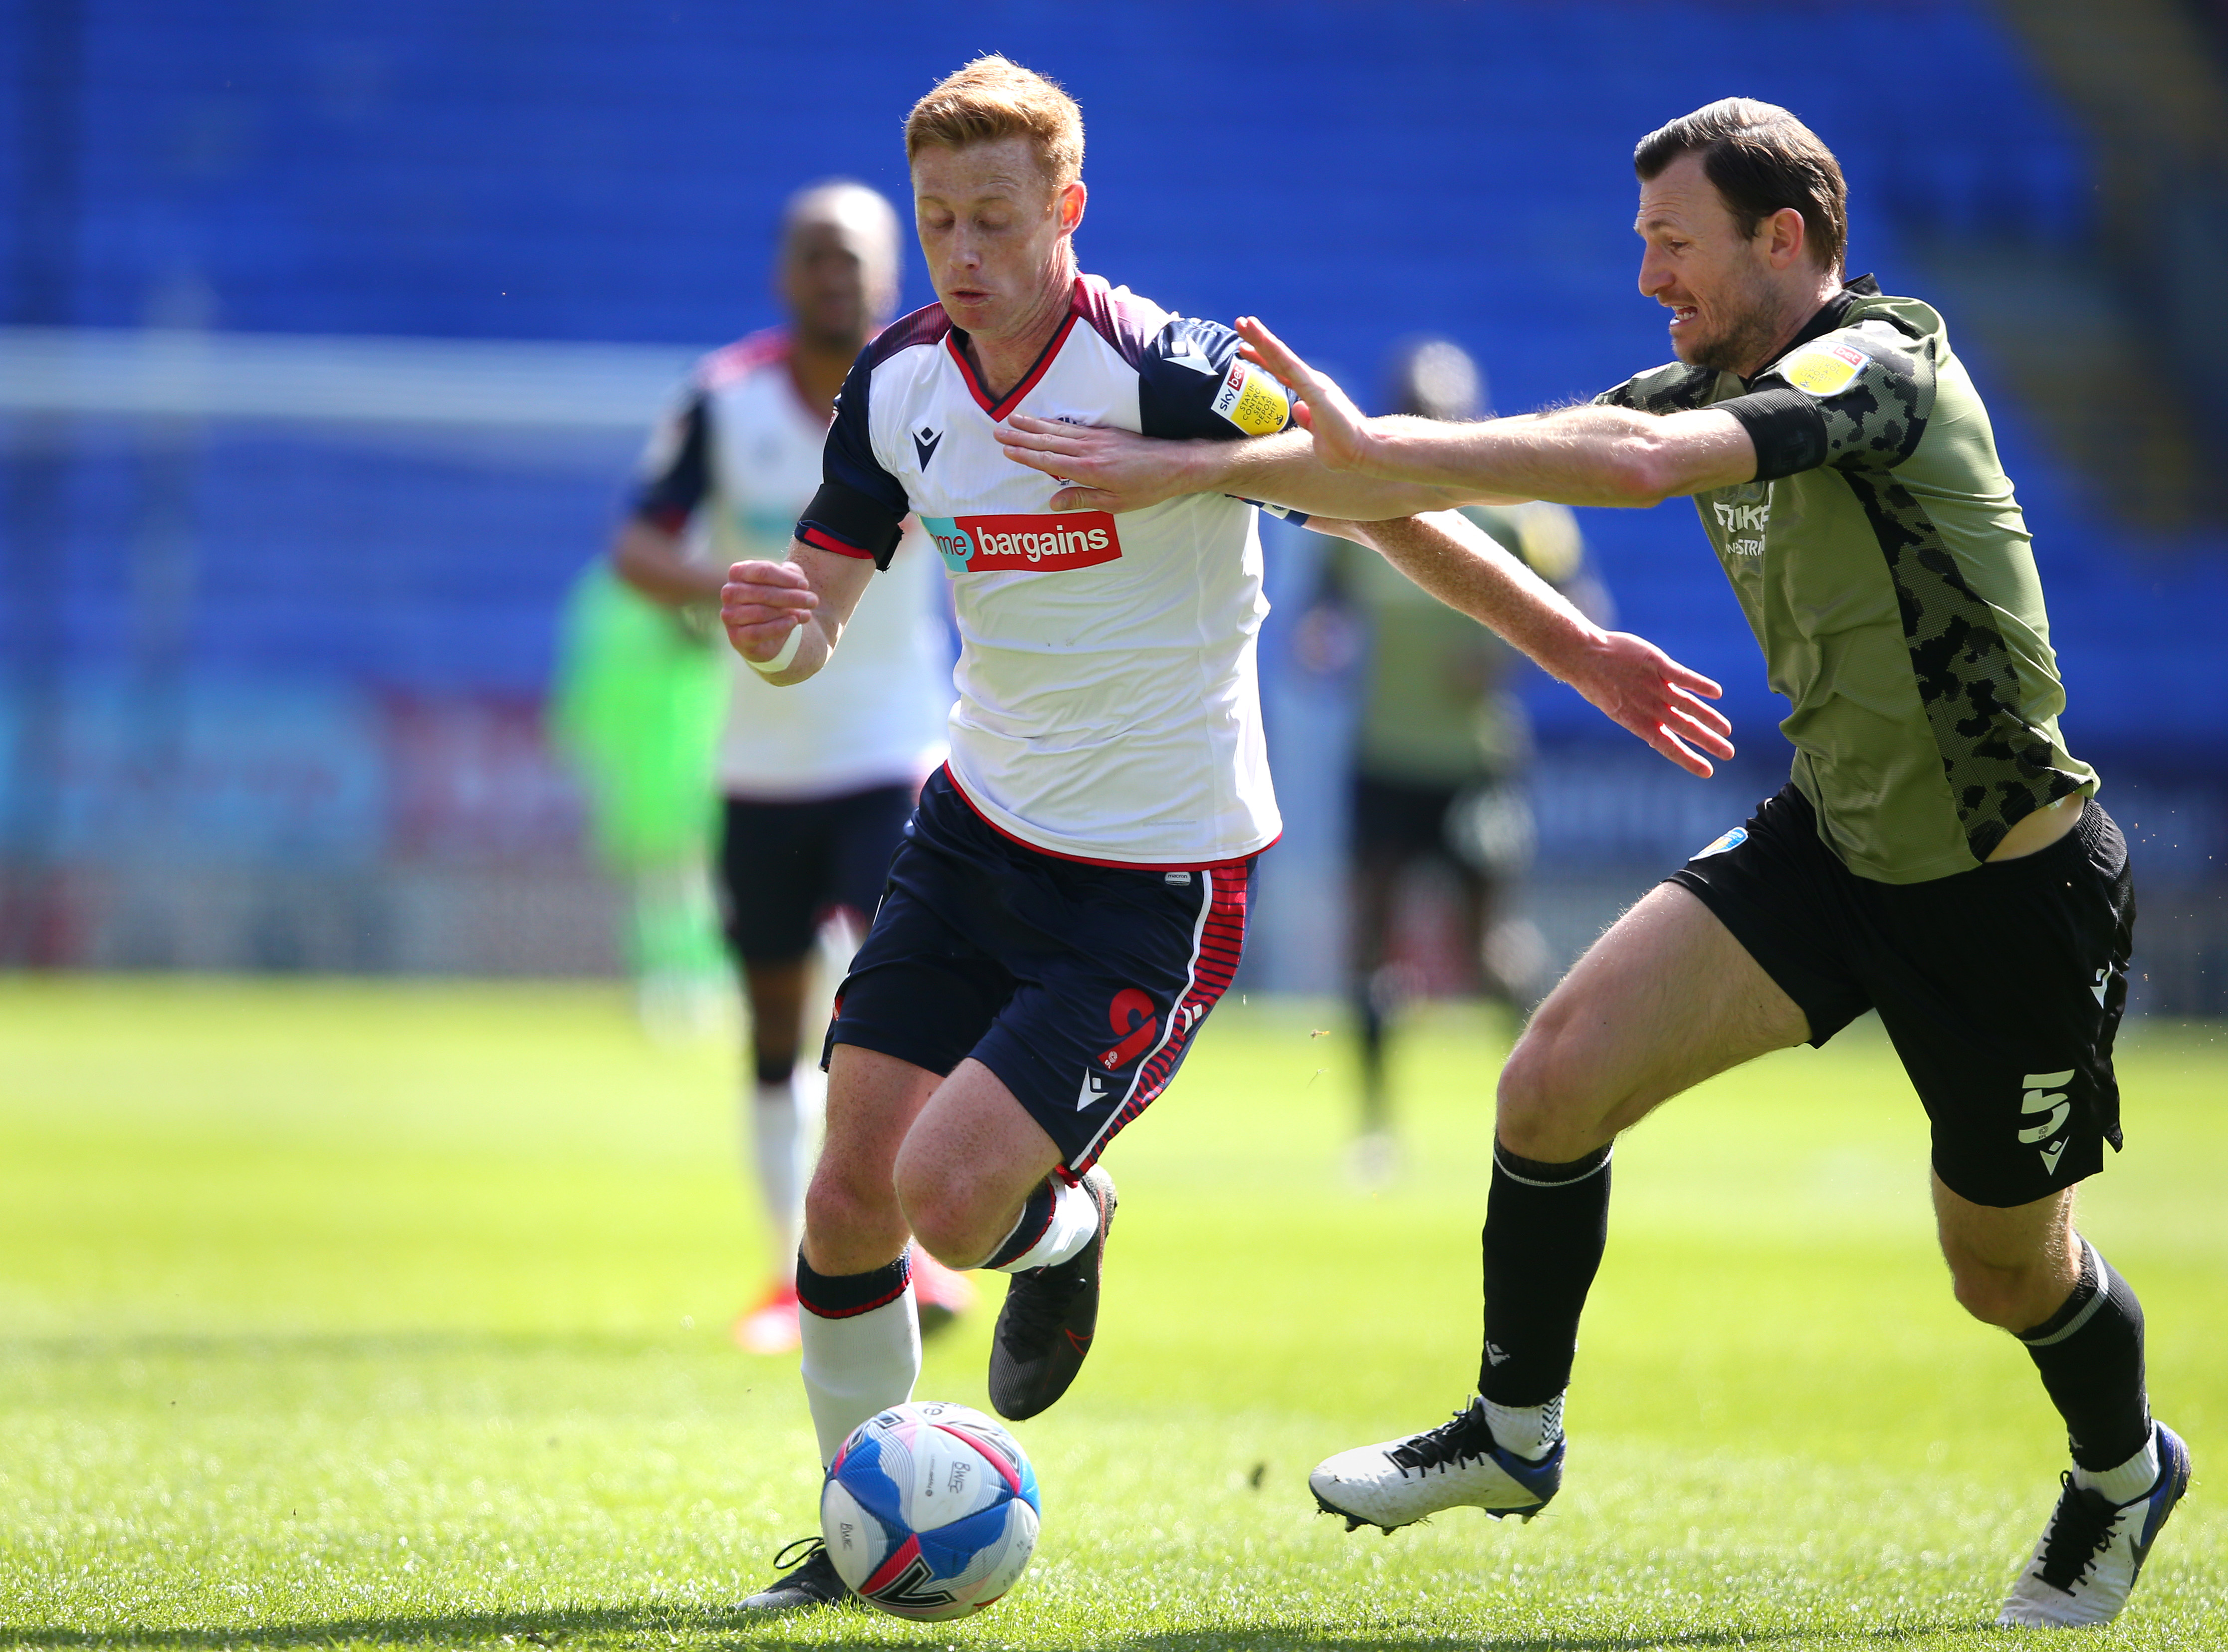 Bolton Wanderers v Colchester United - Sky Bet League Two